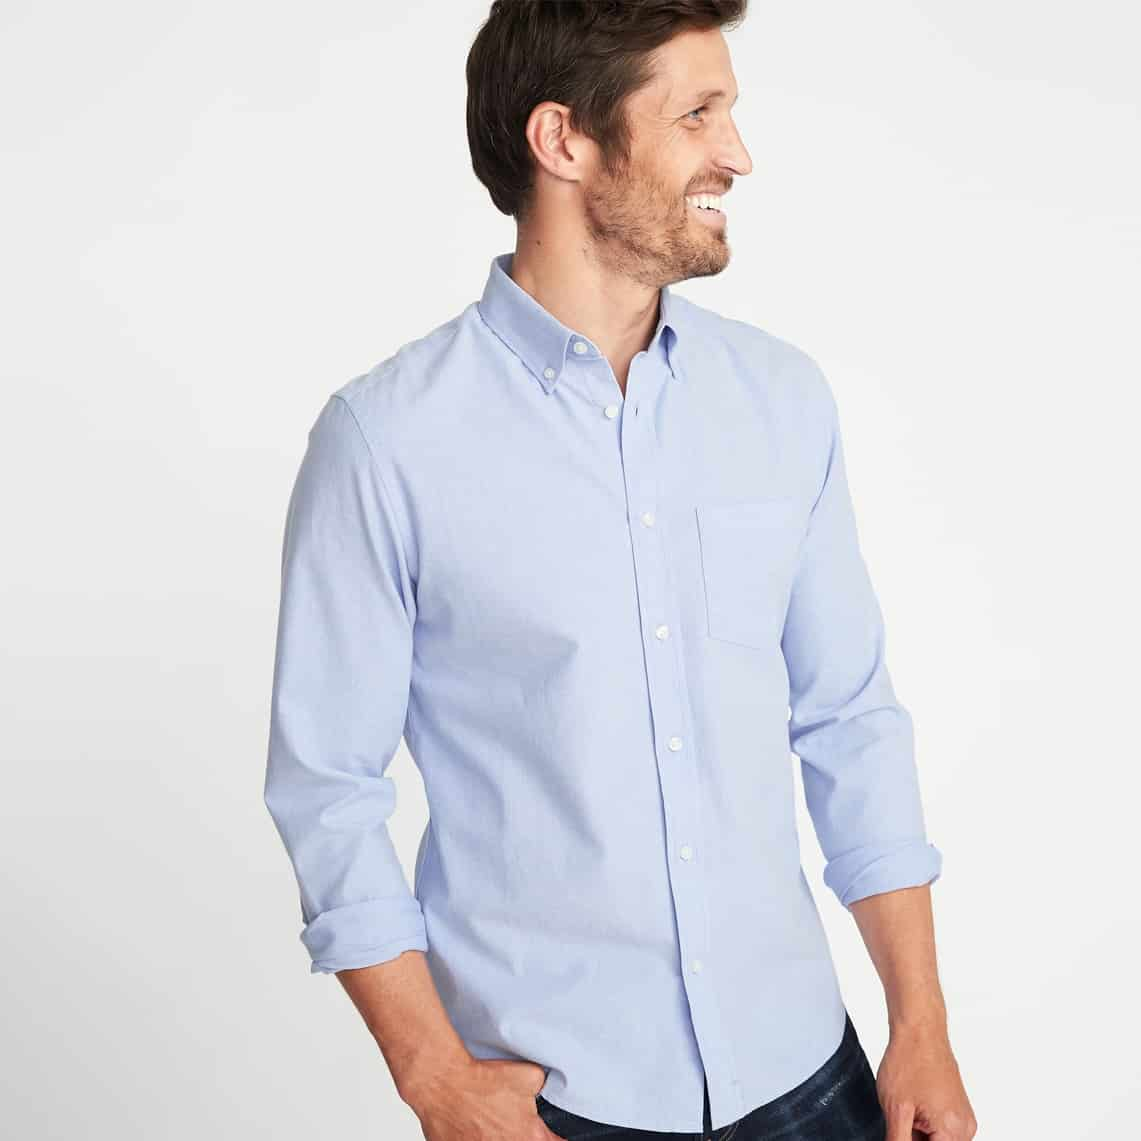 Old Navy - Slim-Fit Built-In Flex Everyday Oxford Shirt For Men